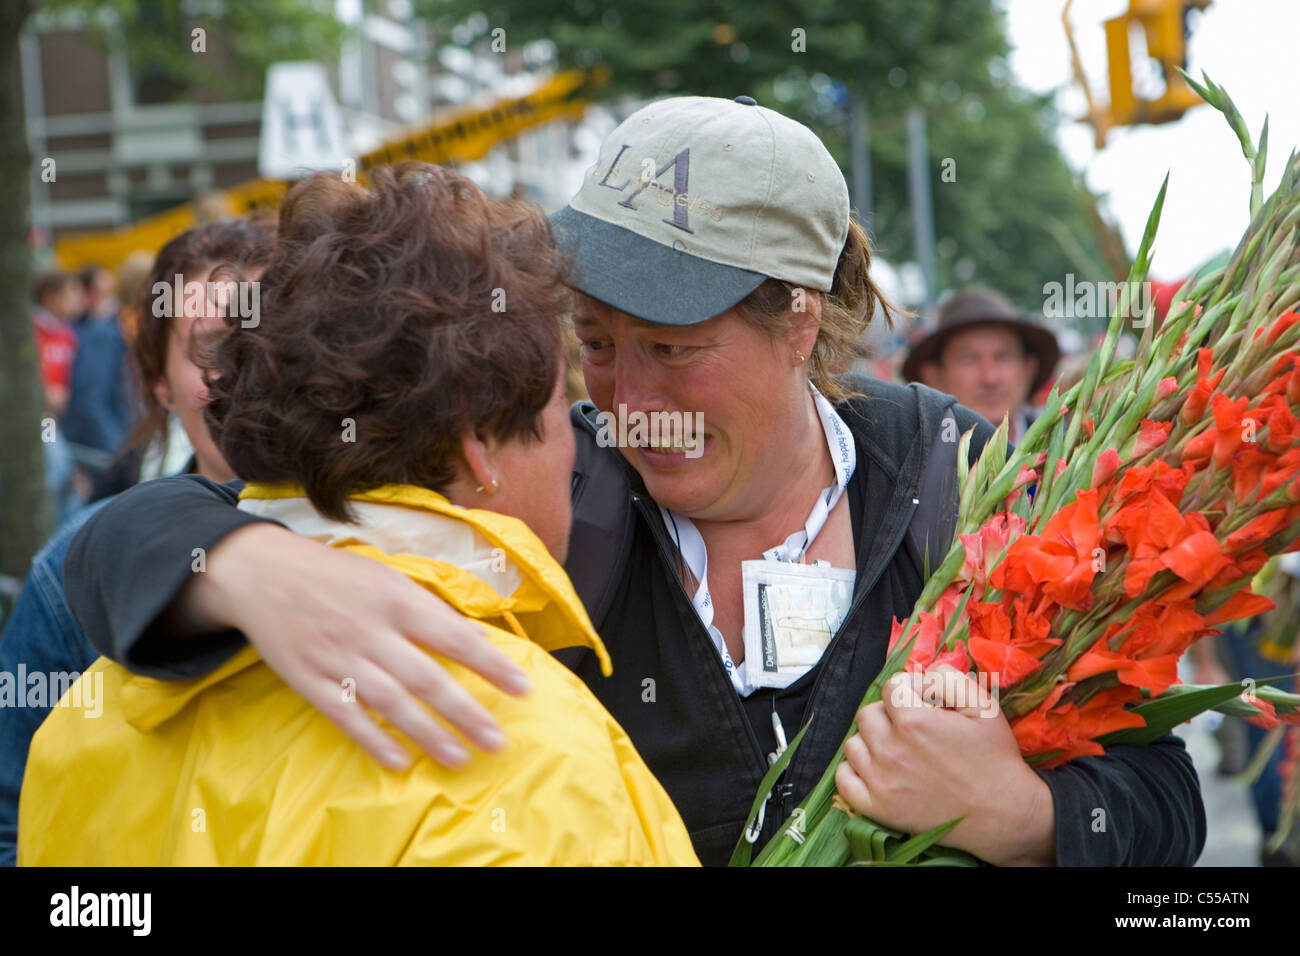 The Netherlands, Nijmegen. The Nijmegen Four-Day Walk. Supporter and participant with flowers at finish. - Stock Image